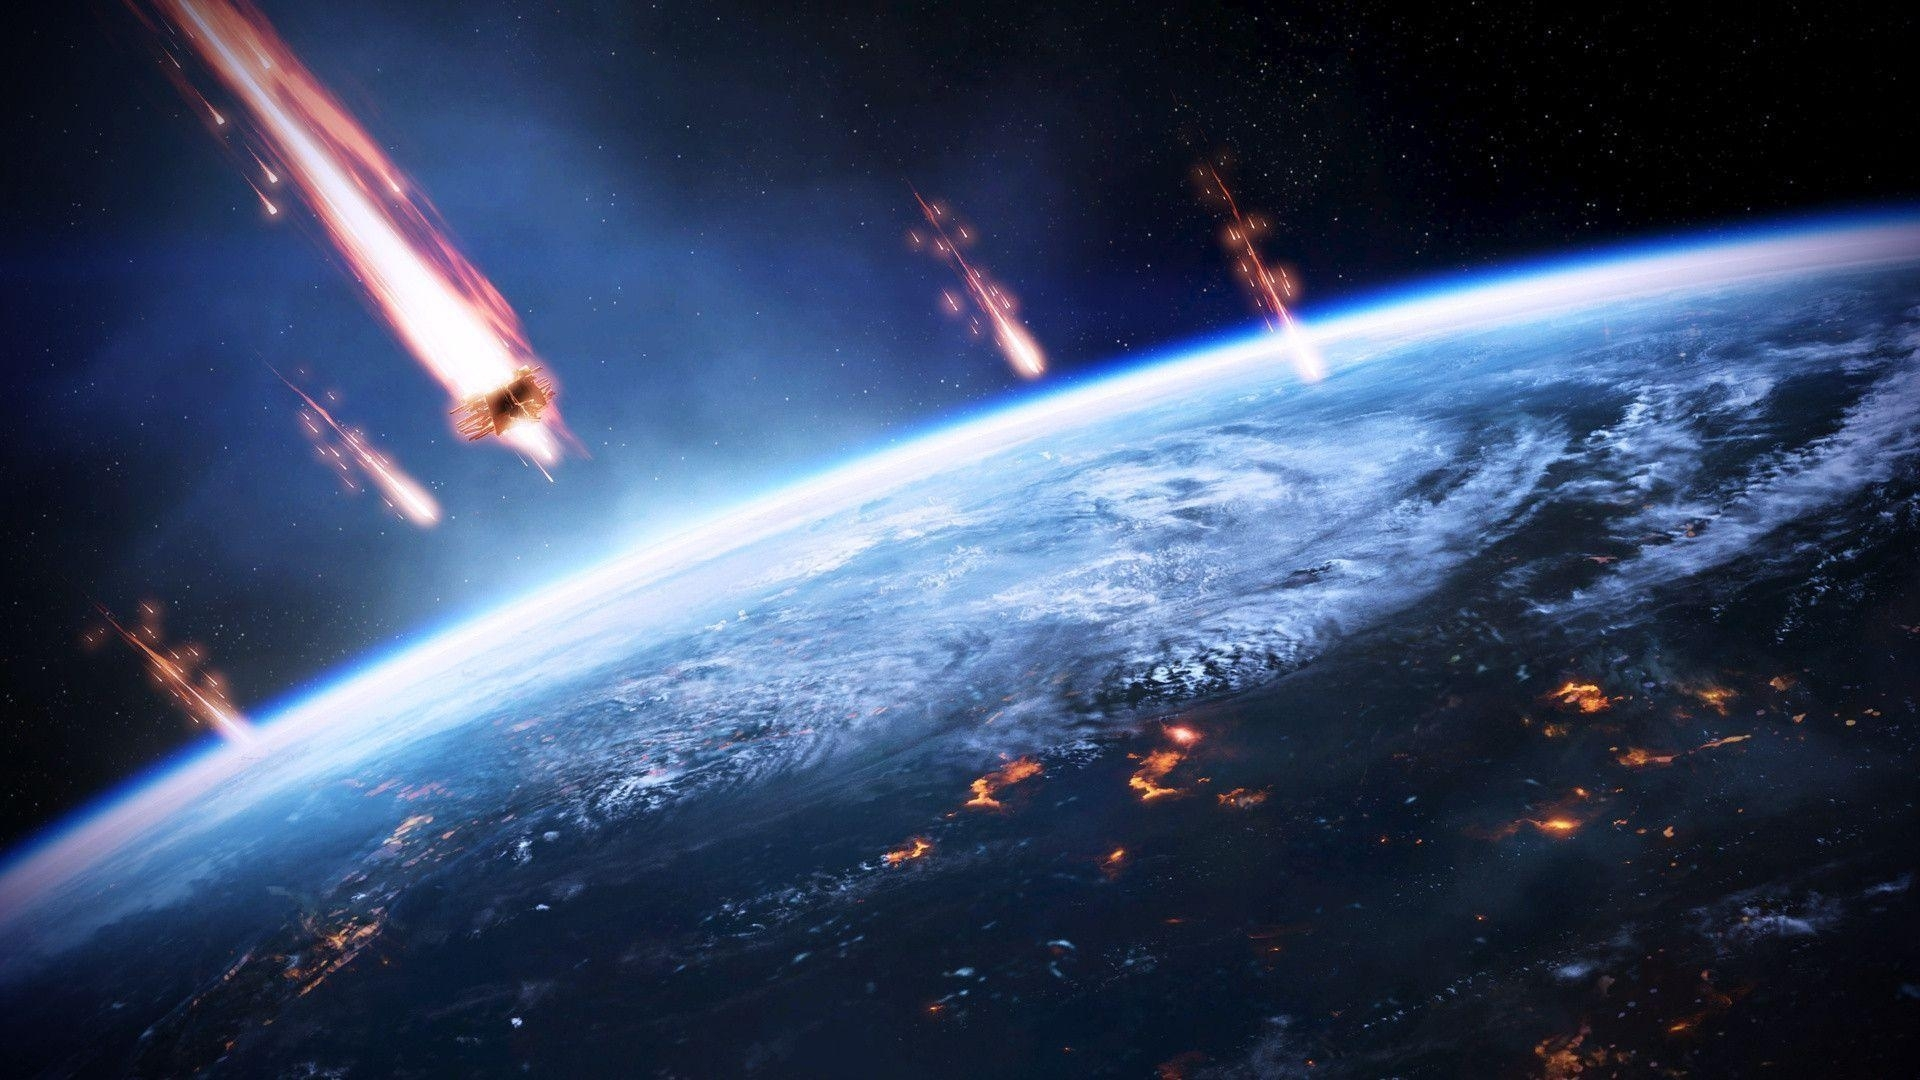 mass effect 3 desktop backgrounds - wallpaper cave